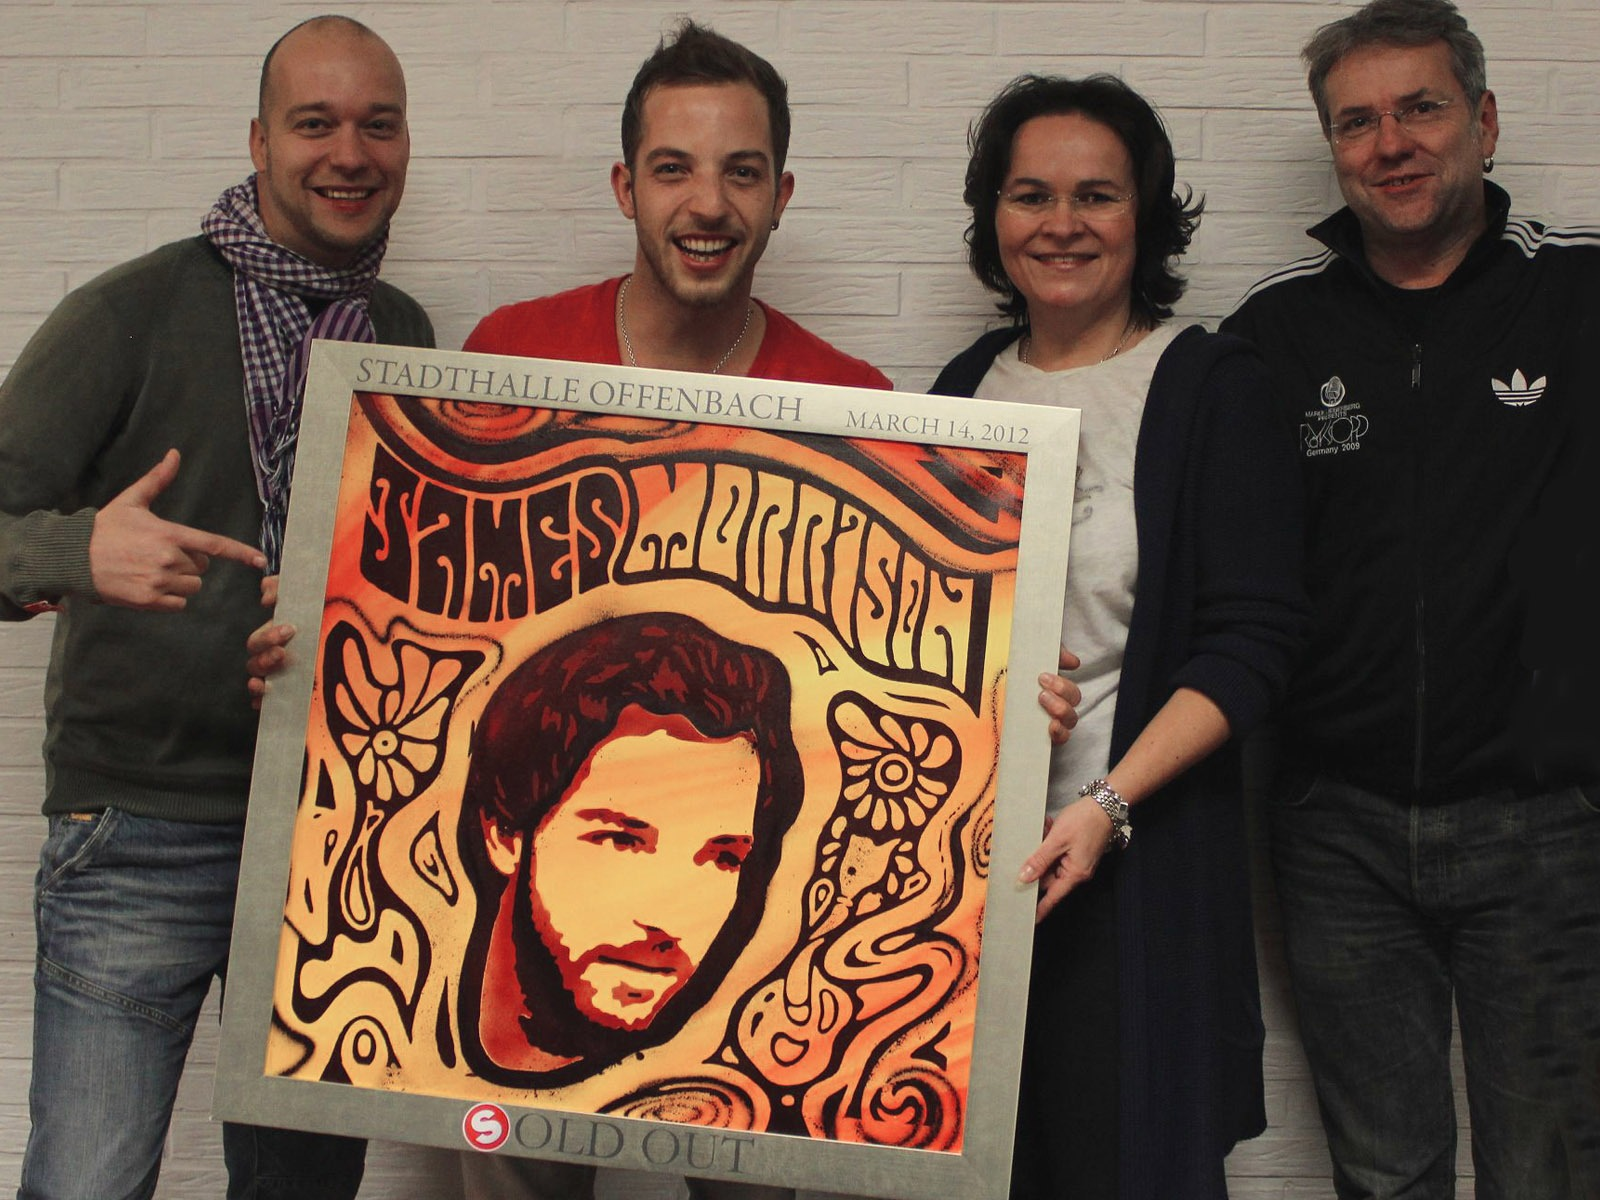 graffitiauftrag_artmos4_sold_out_award_james_morrison_Stadthalle_Offenbach_Leinwand_Graffiti